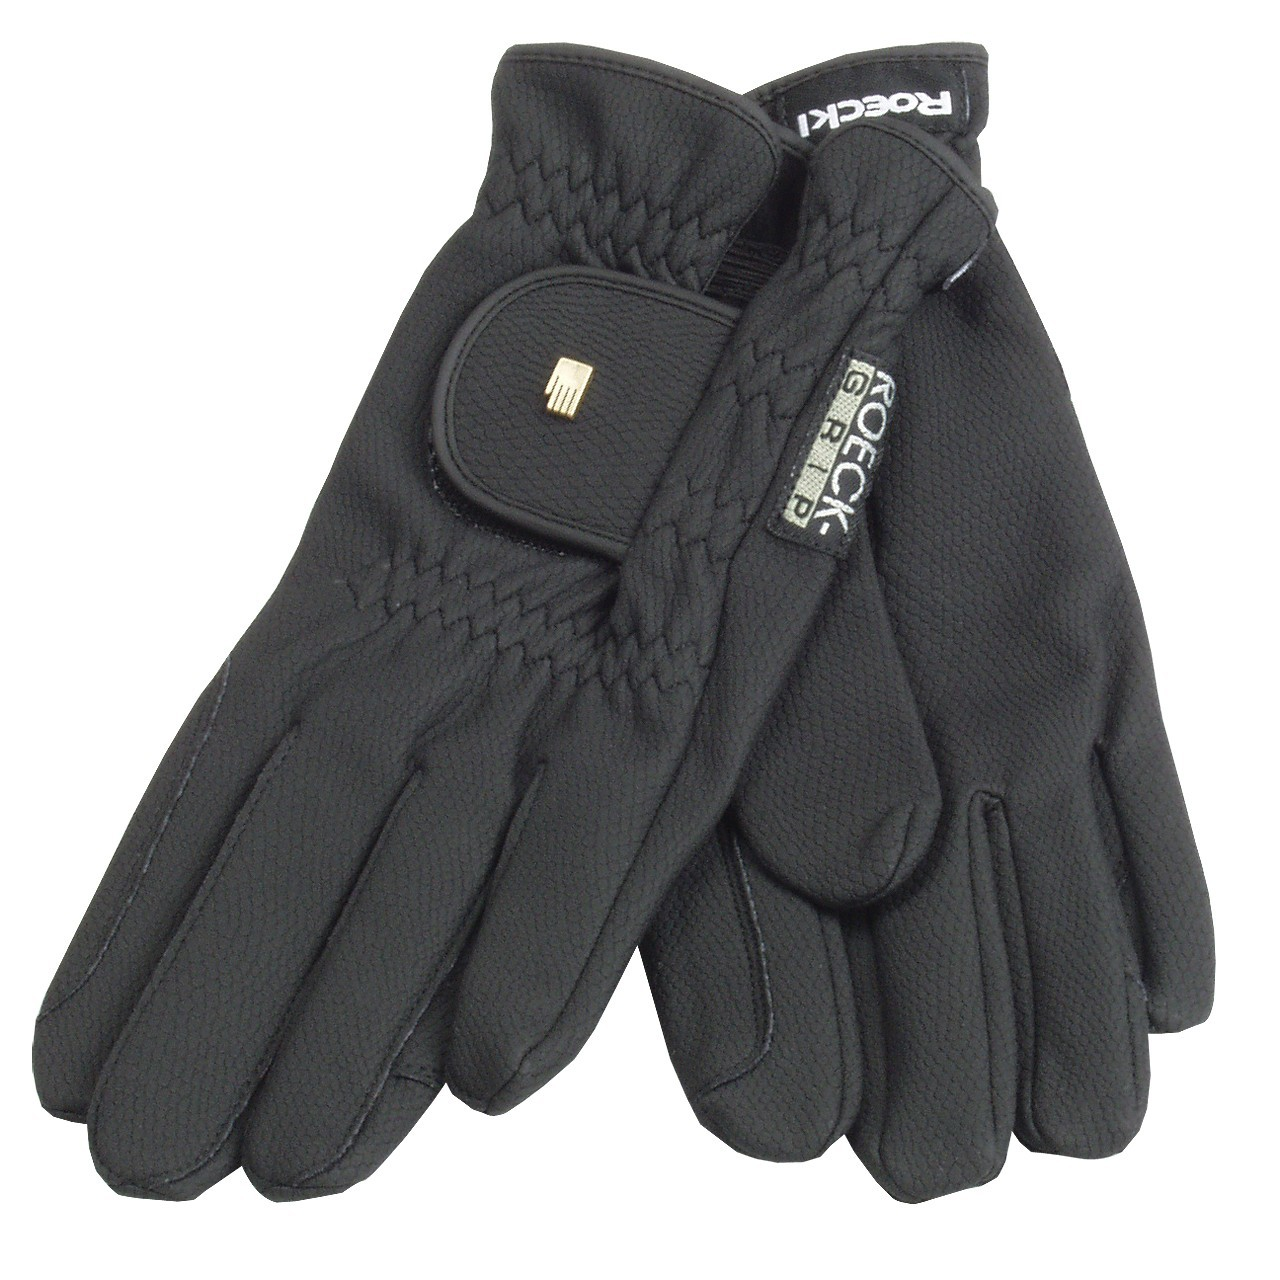 Roeckl Roeck Grip winter handschoen